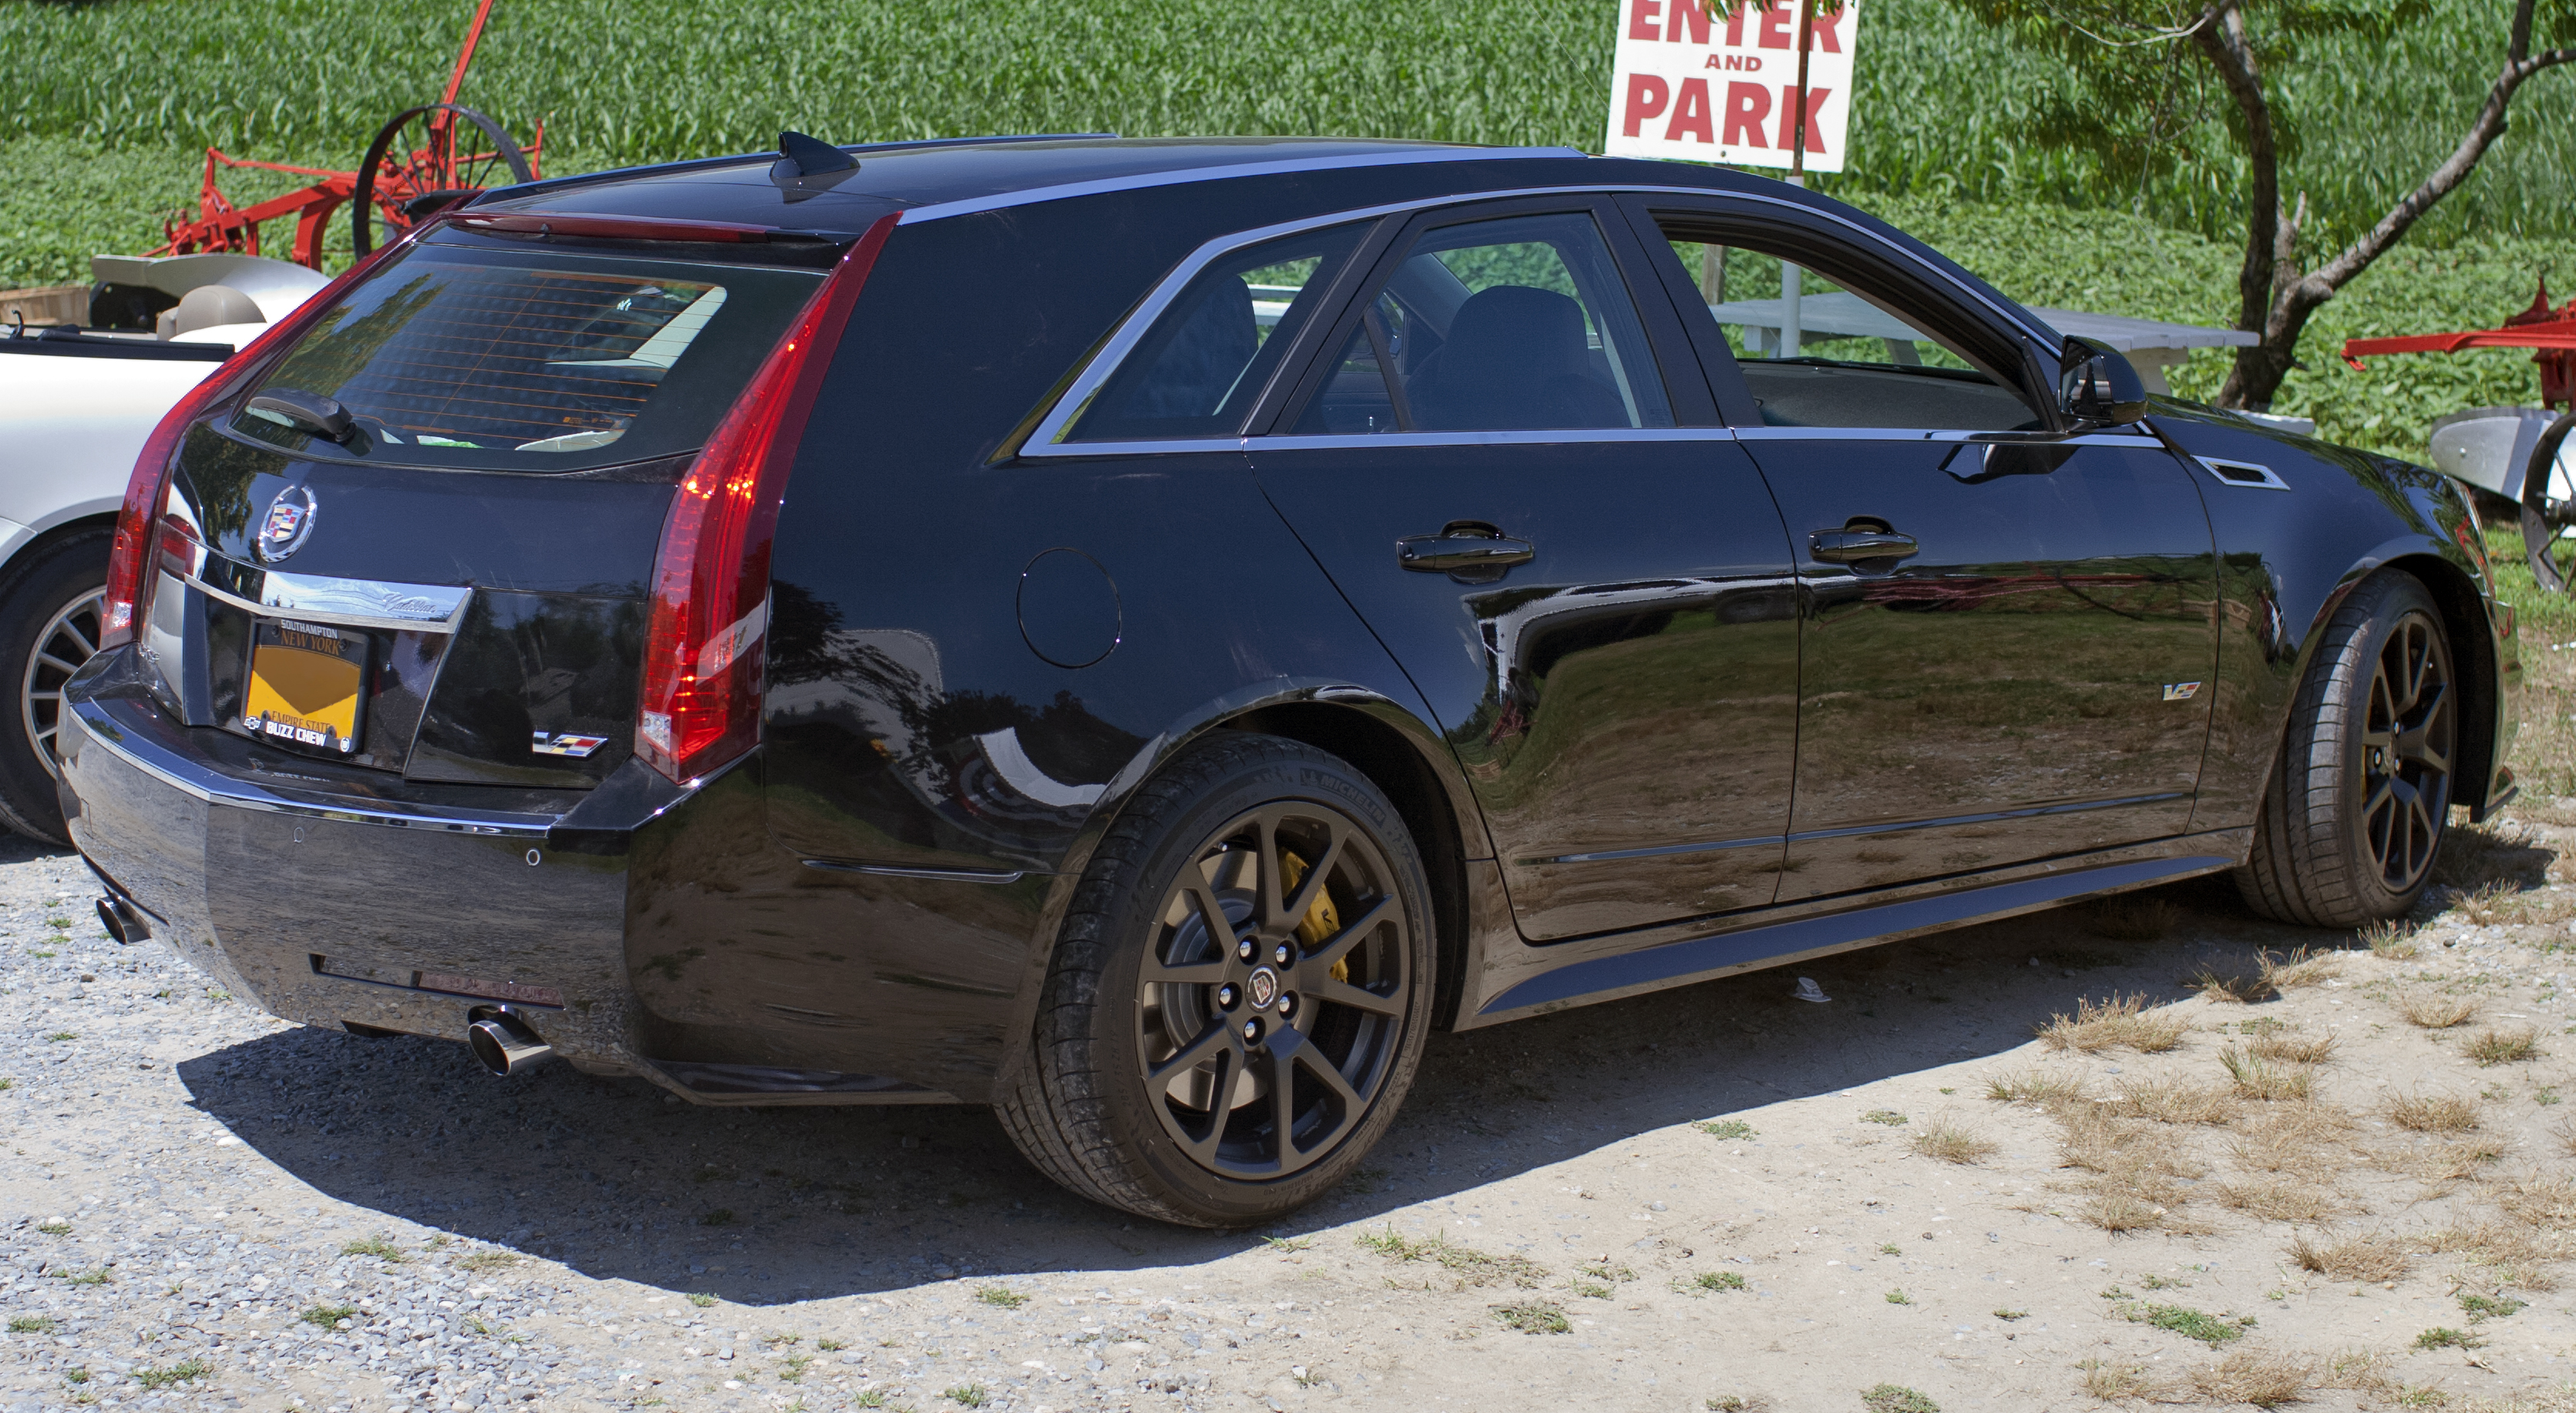 File 2012 Cadillac Cts V Wagon Black Jpg Wikimedia Commons